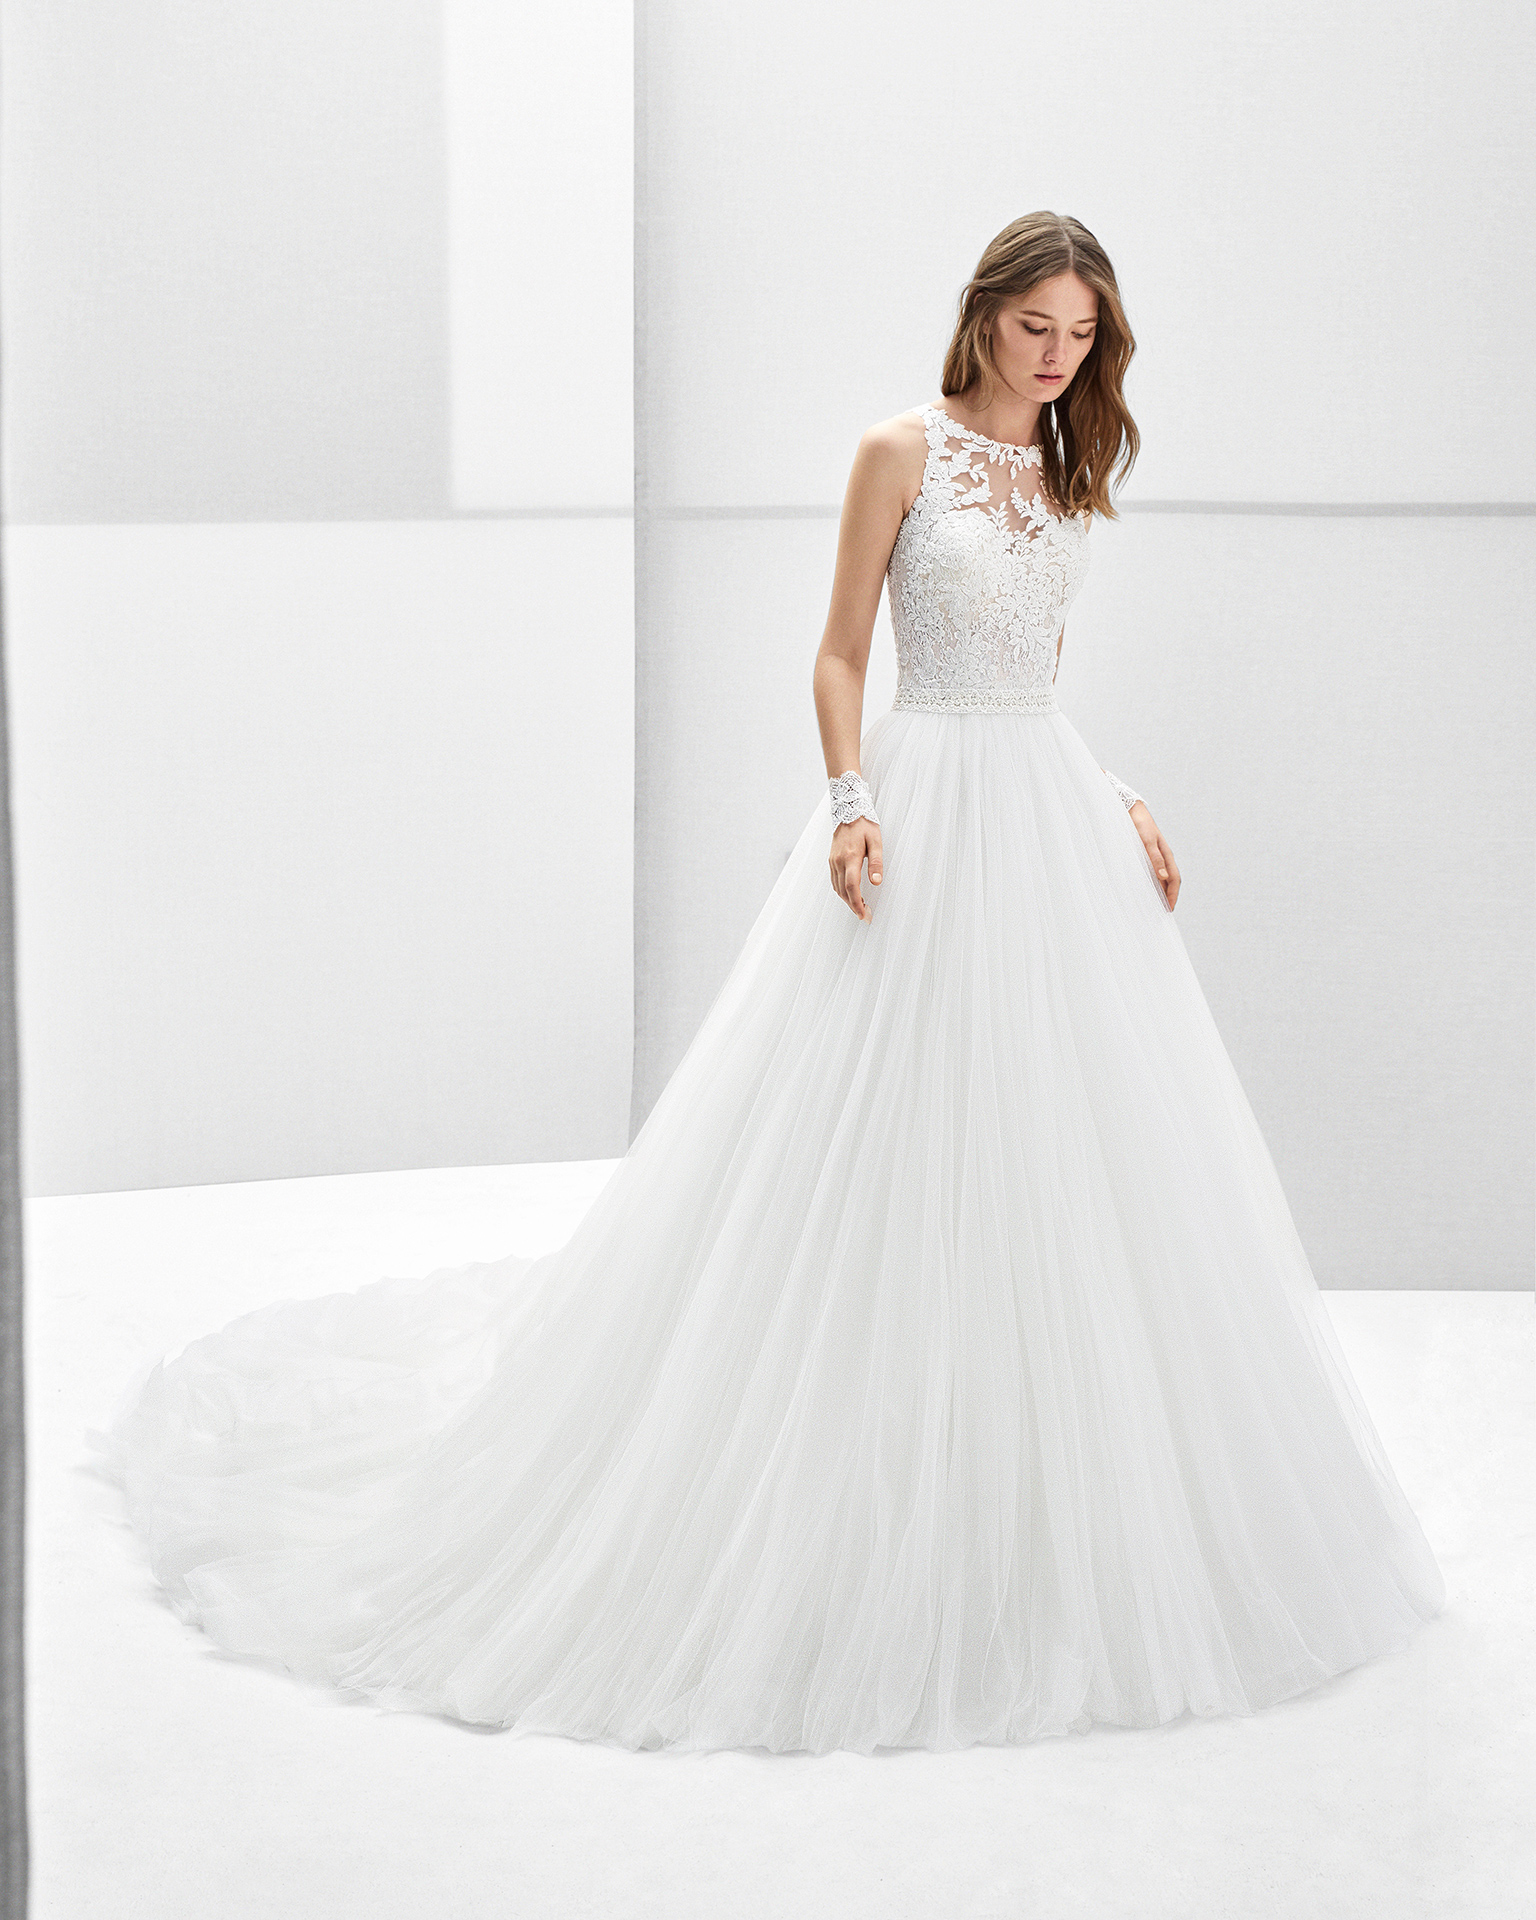 Princess-style tulle and lace wedding dress with halter neckline and beadwork detail, in natural.